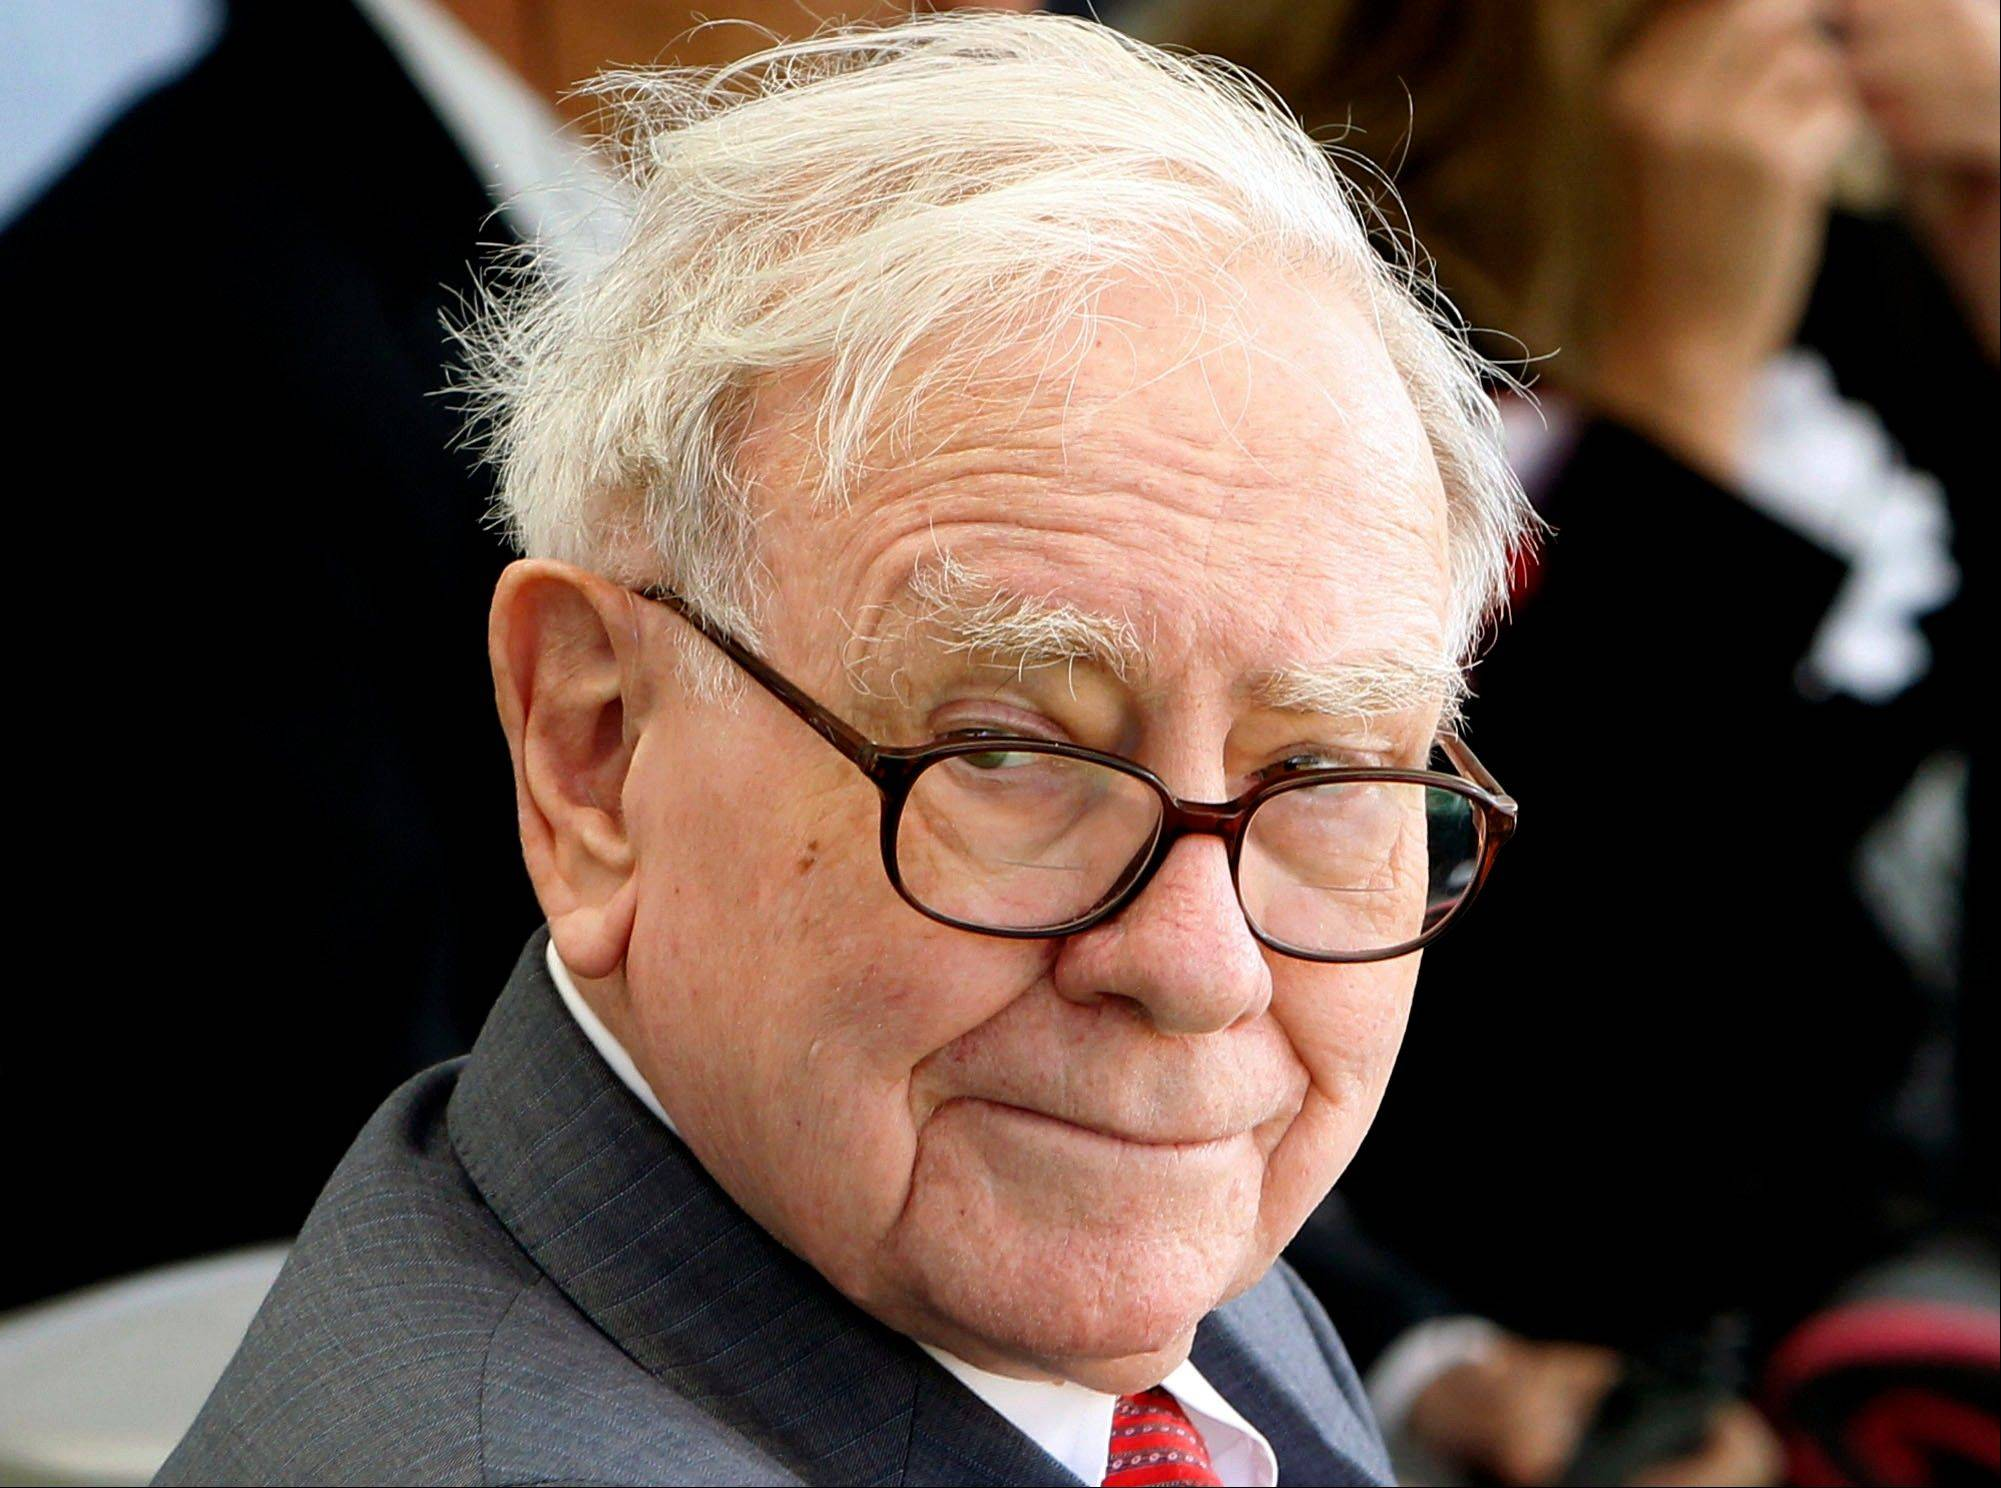 Billionaire Warren Buffett is auctioning off an all-you-can-eat tour of the See�s Candy factory in California to benefit an education nonprofit there.